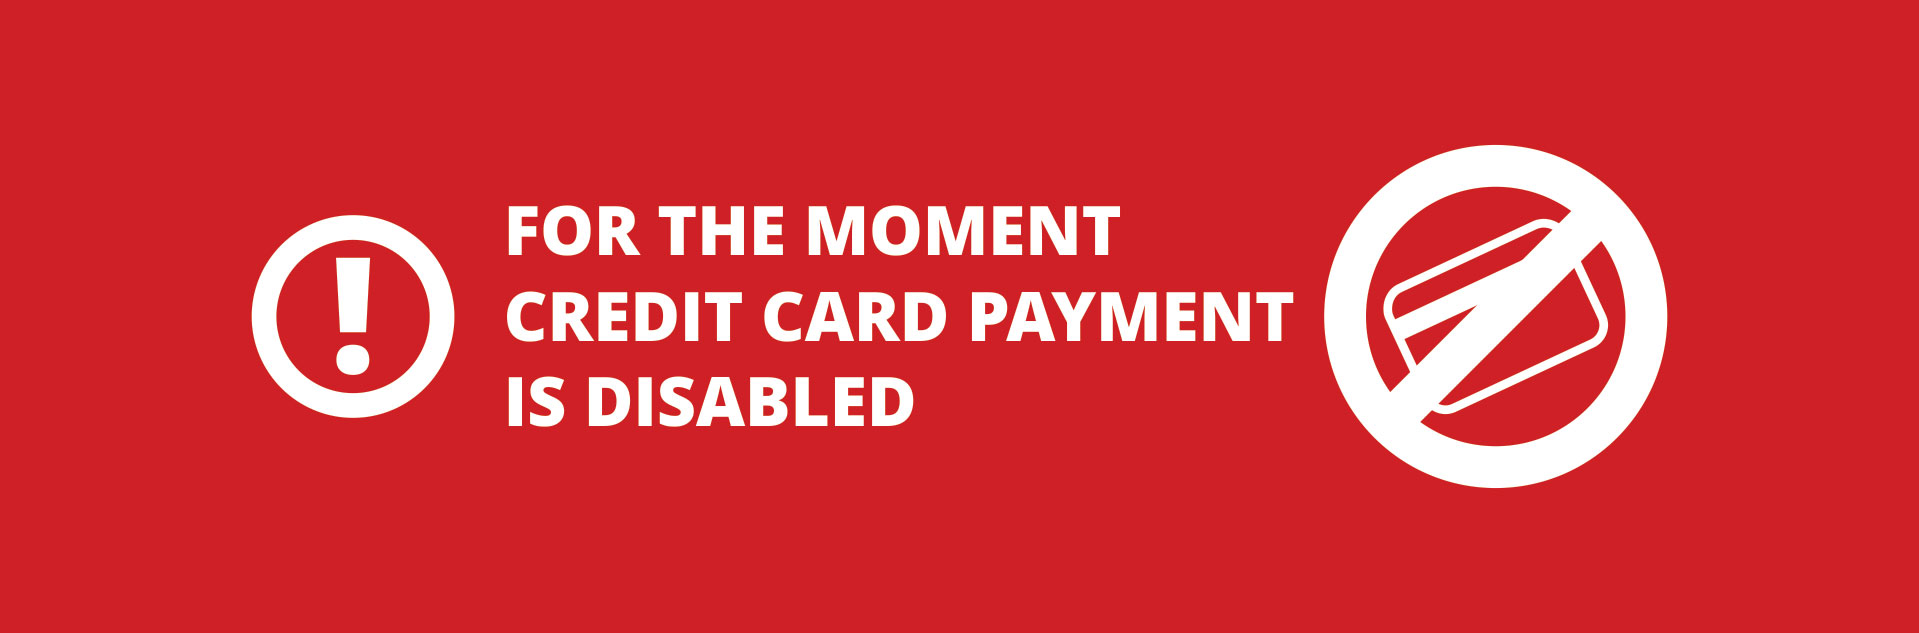 banner credit card payment is disabled